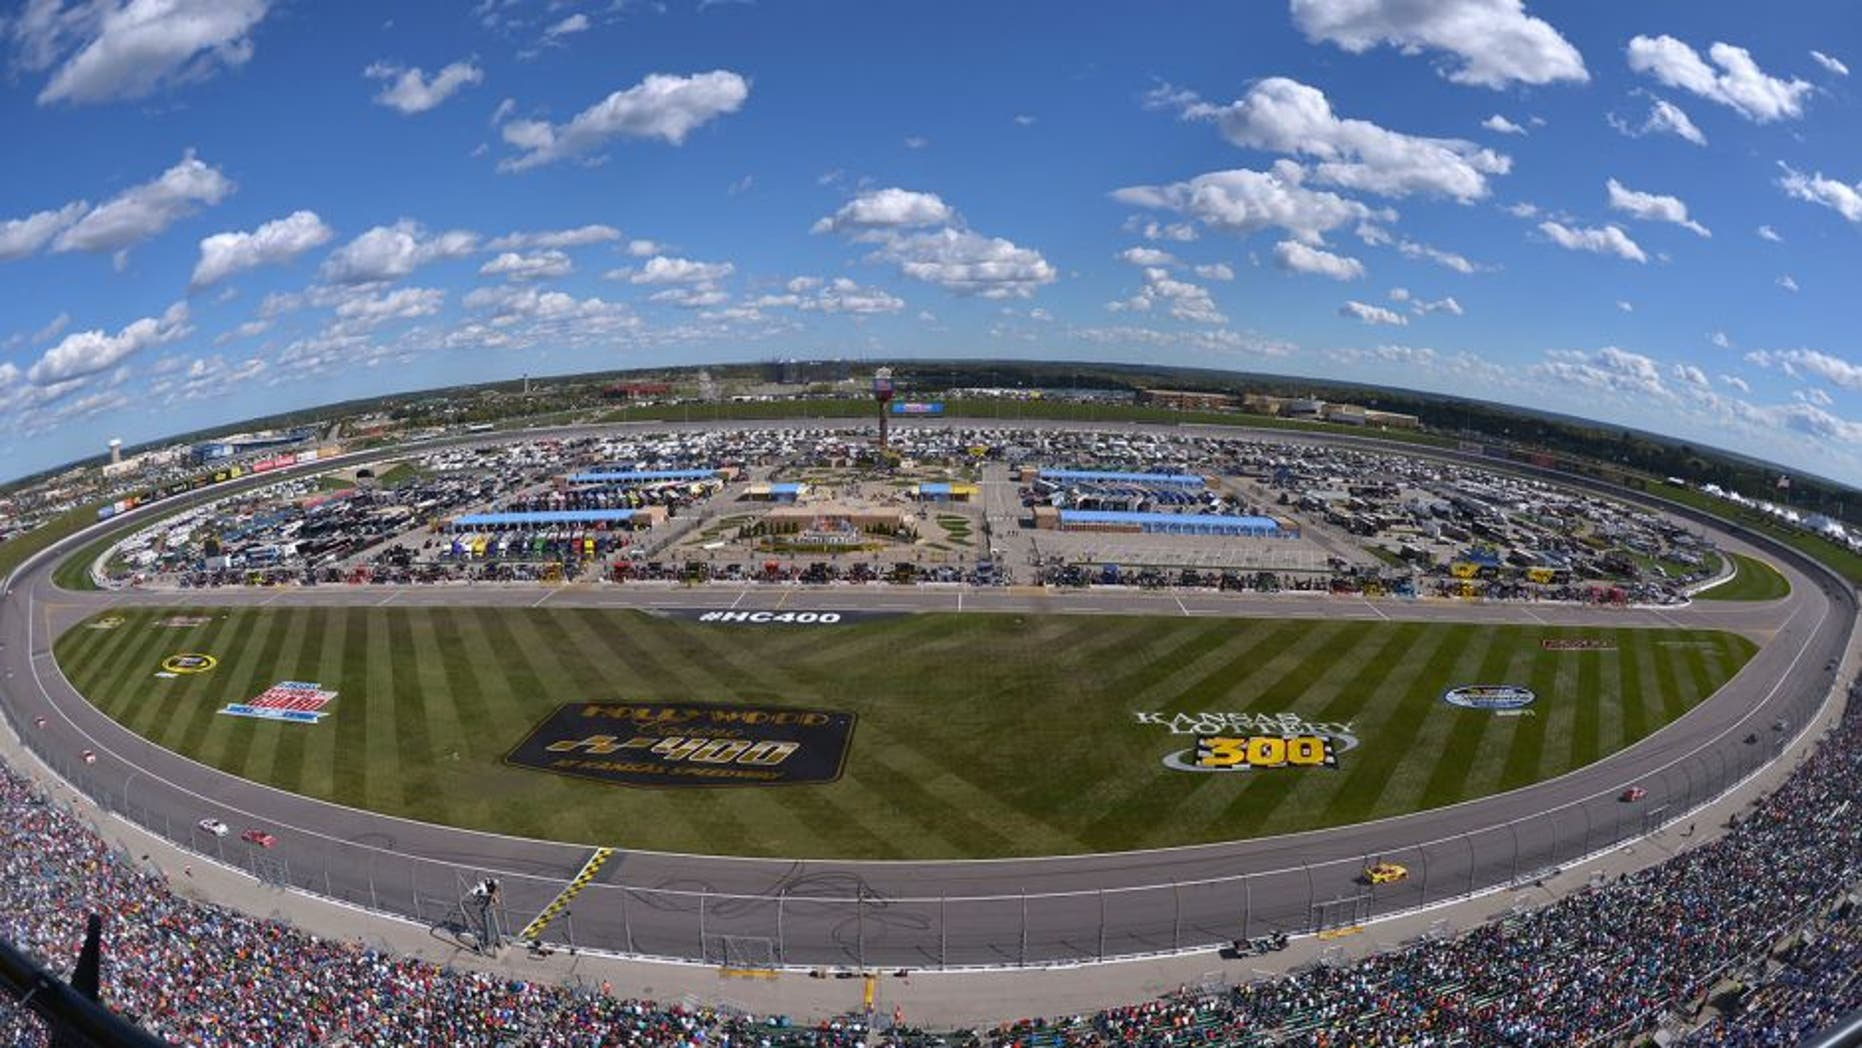 KANSAS CITY, KS - OCTOBER 05: A general view of the track during the NASCAR Sprint Cup Series Hollywood Casino 400 at Kansas Speedway on October 5, 2014 in Kansas City, Kansas. (Photo by Jonathan Moore/Getty Images)